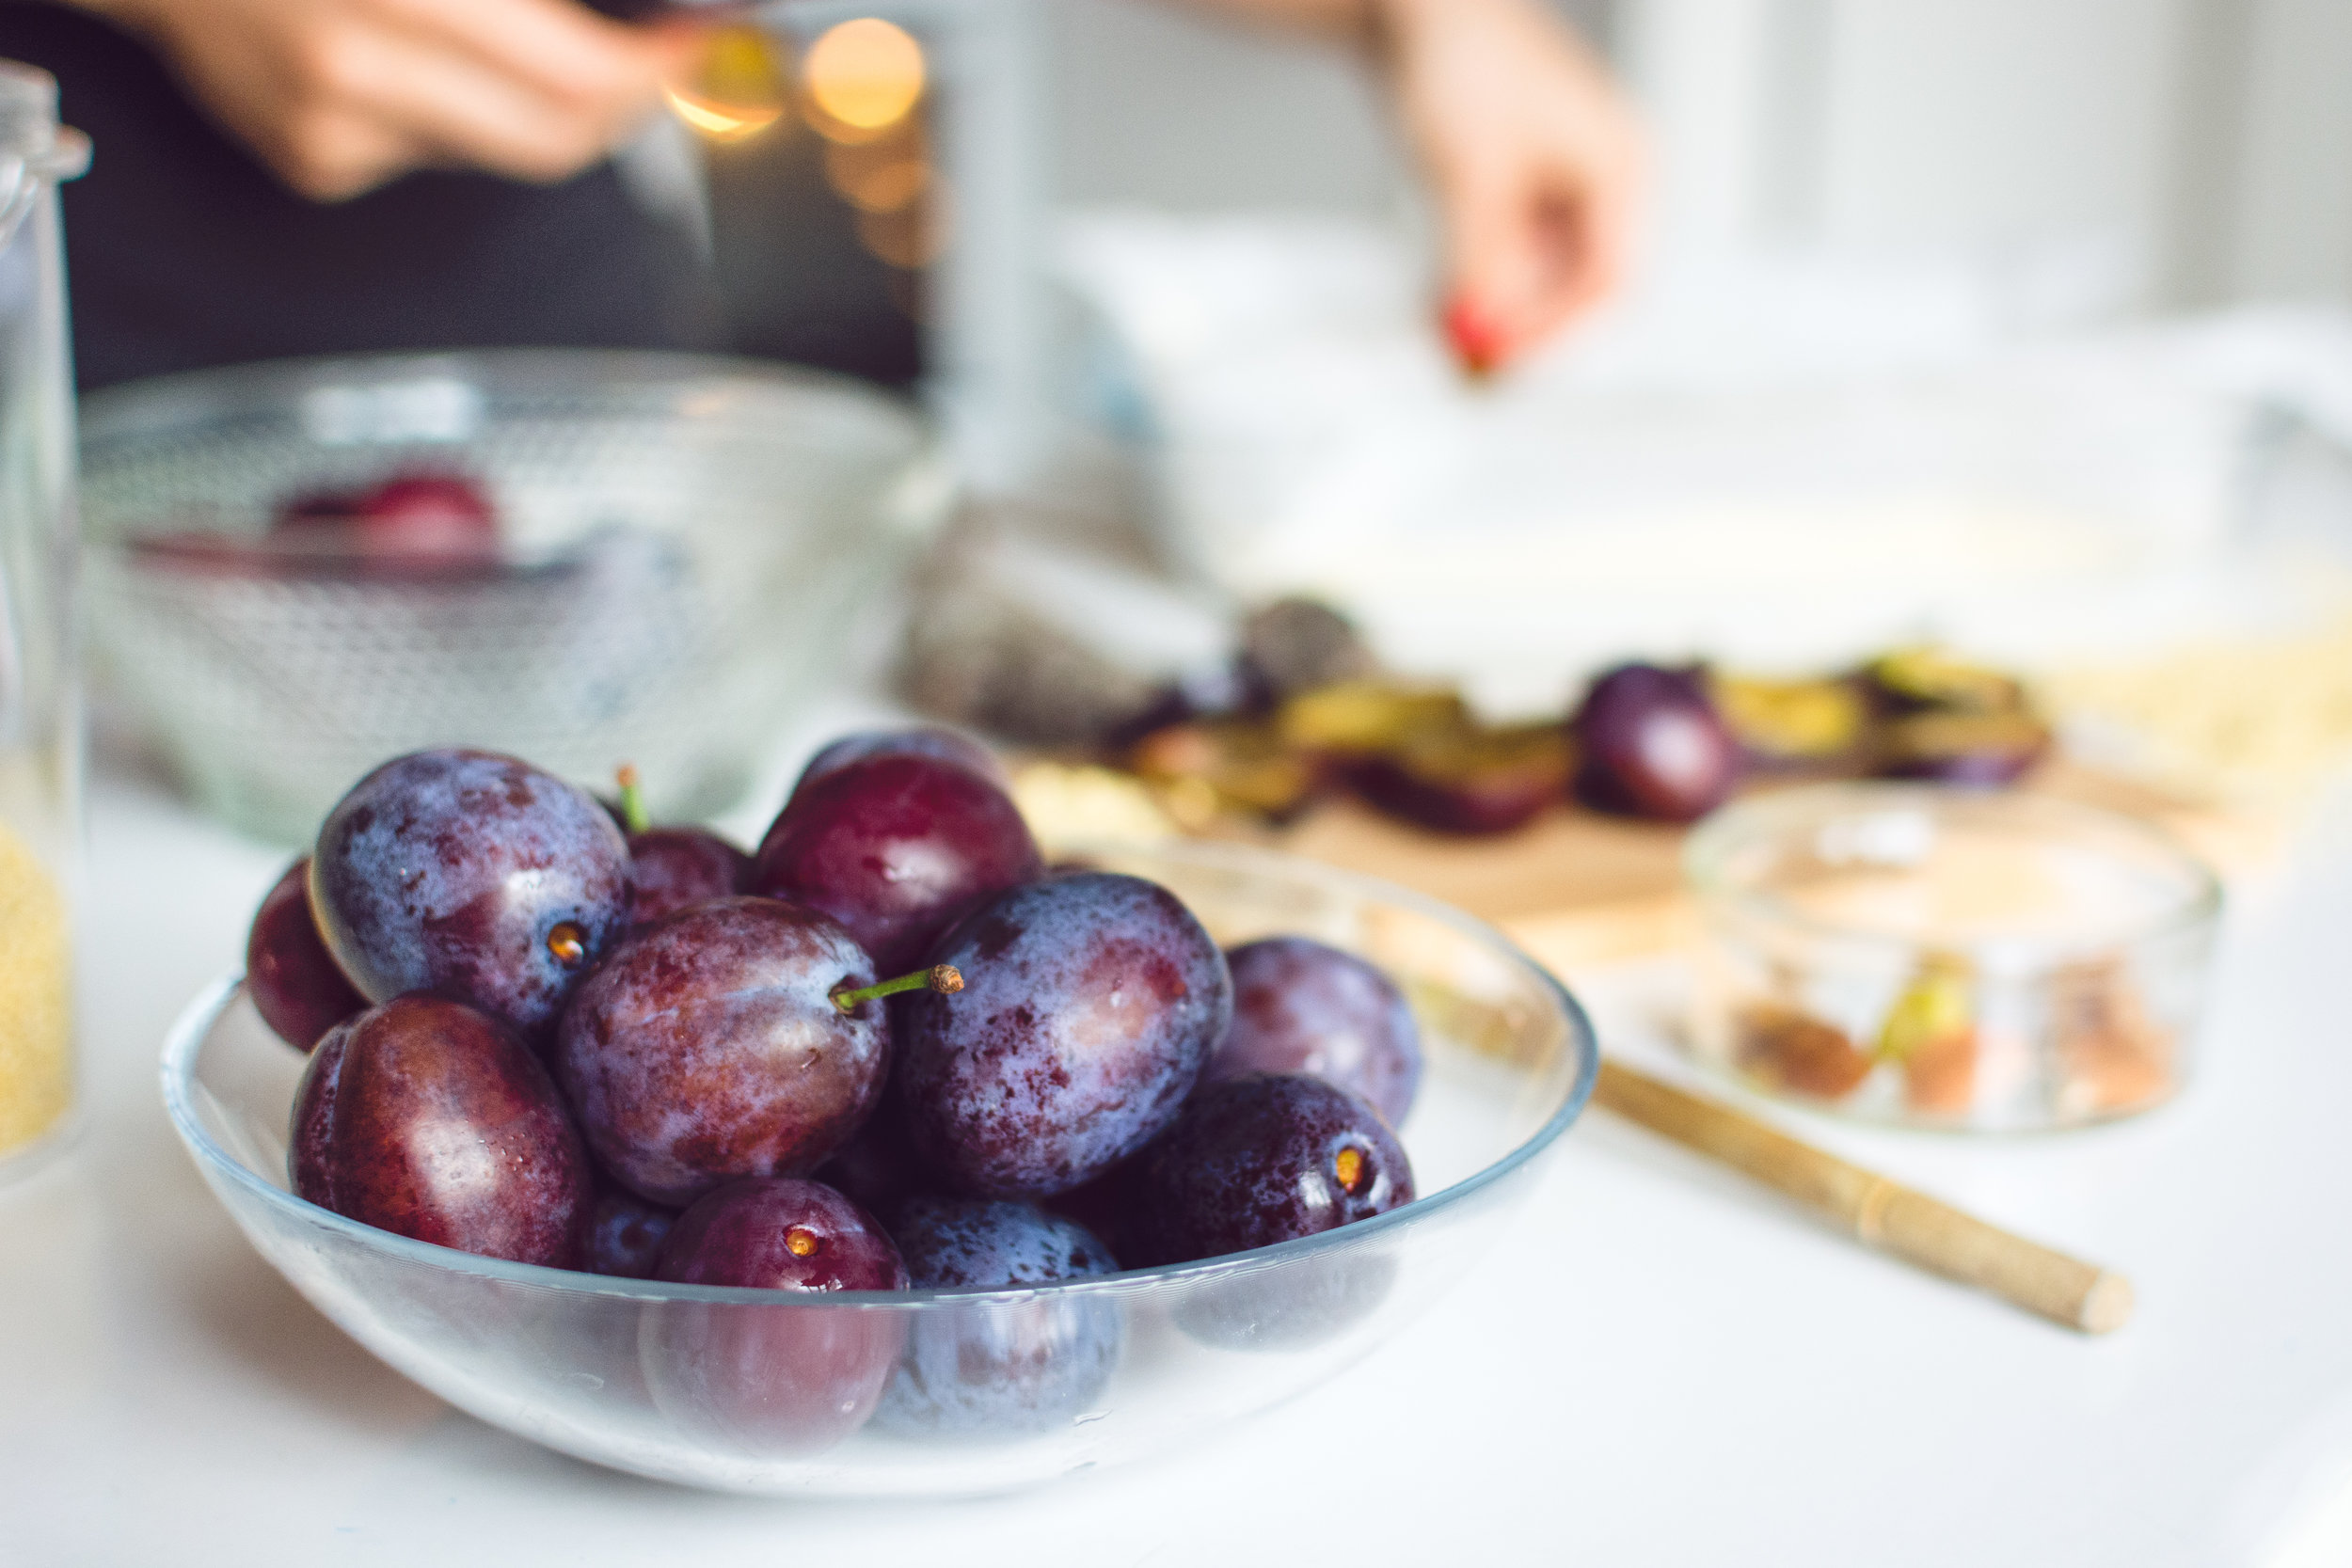 foodiesfeed.com_plums-ready-for-baking-a-cake-1.jpg